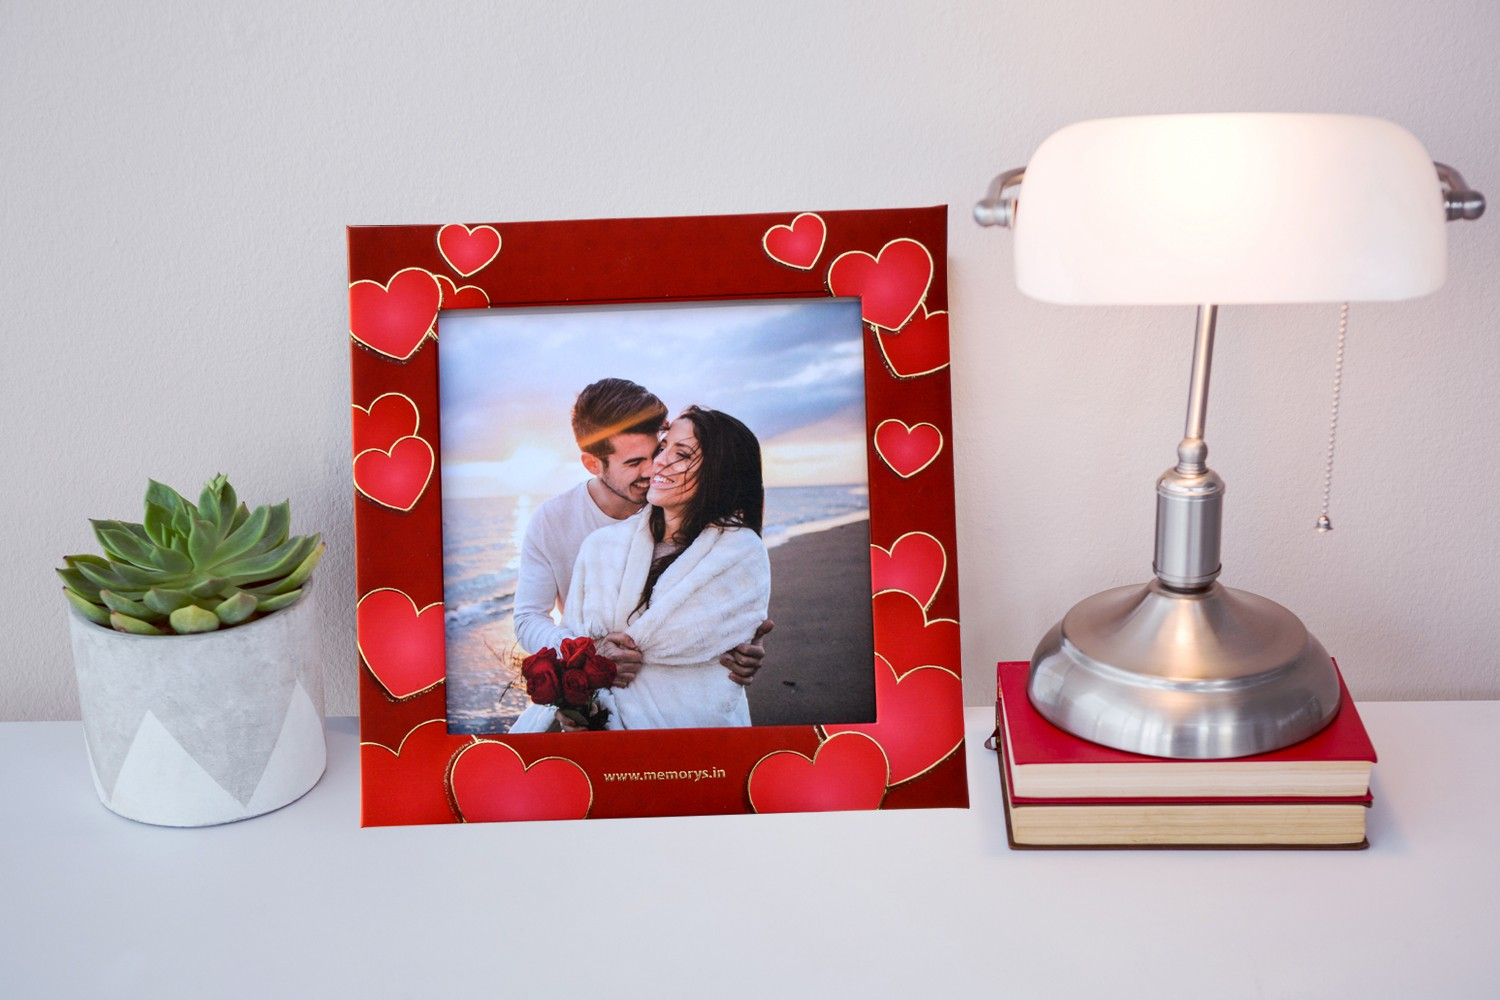 Hearts in Hearts Photo Frame